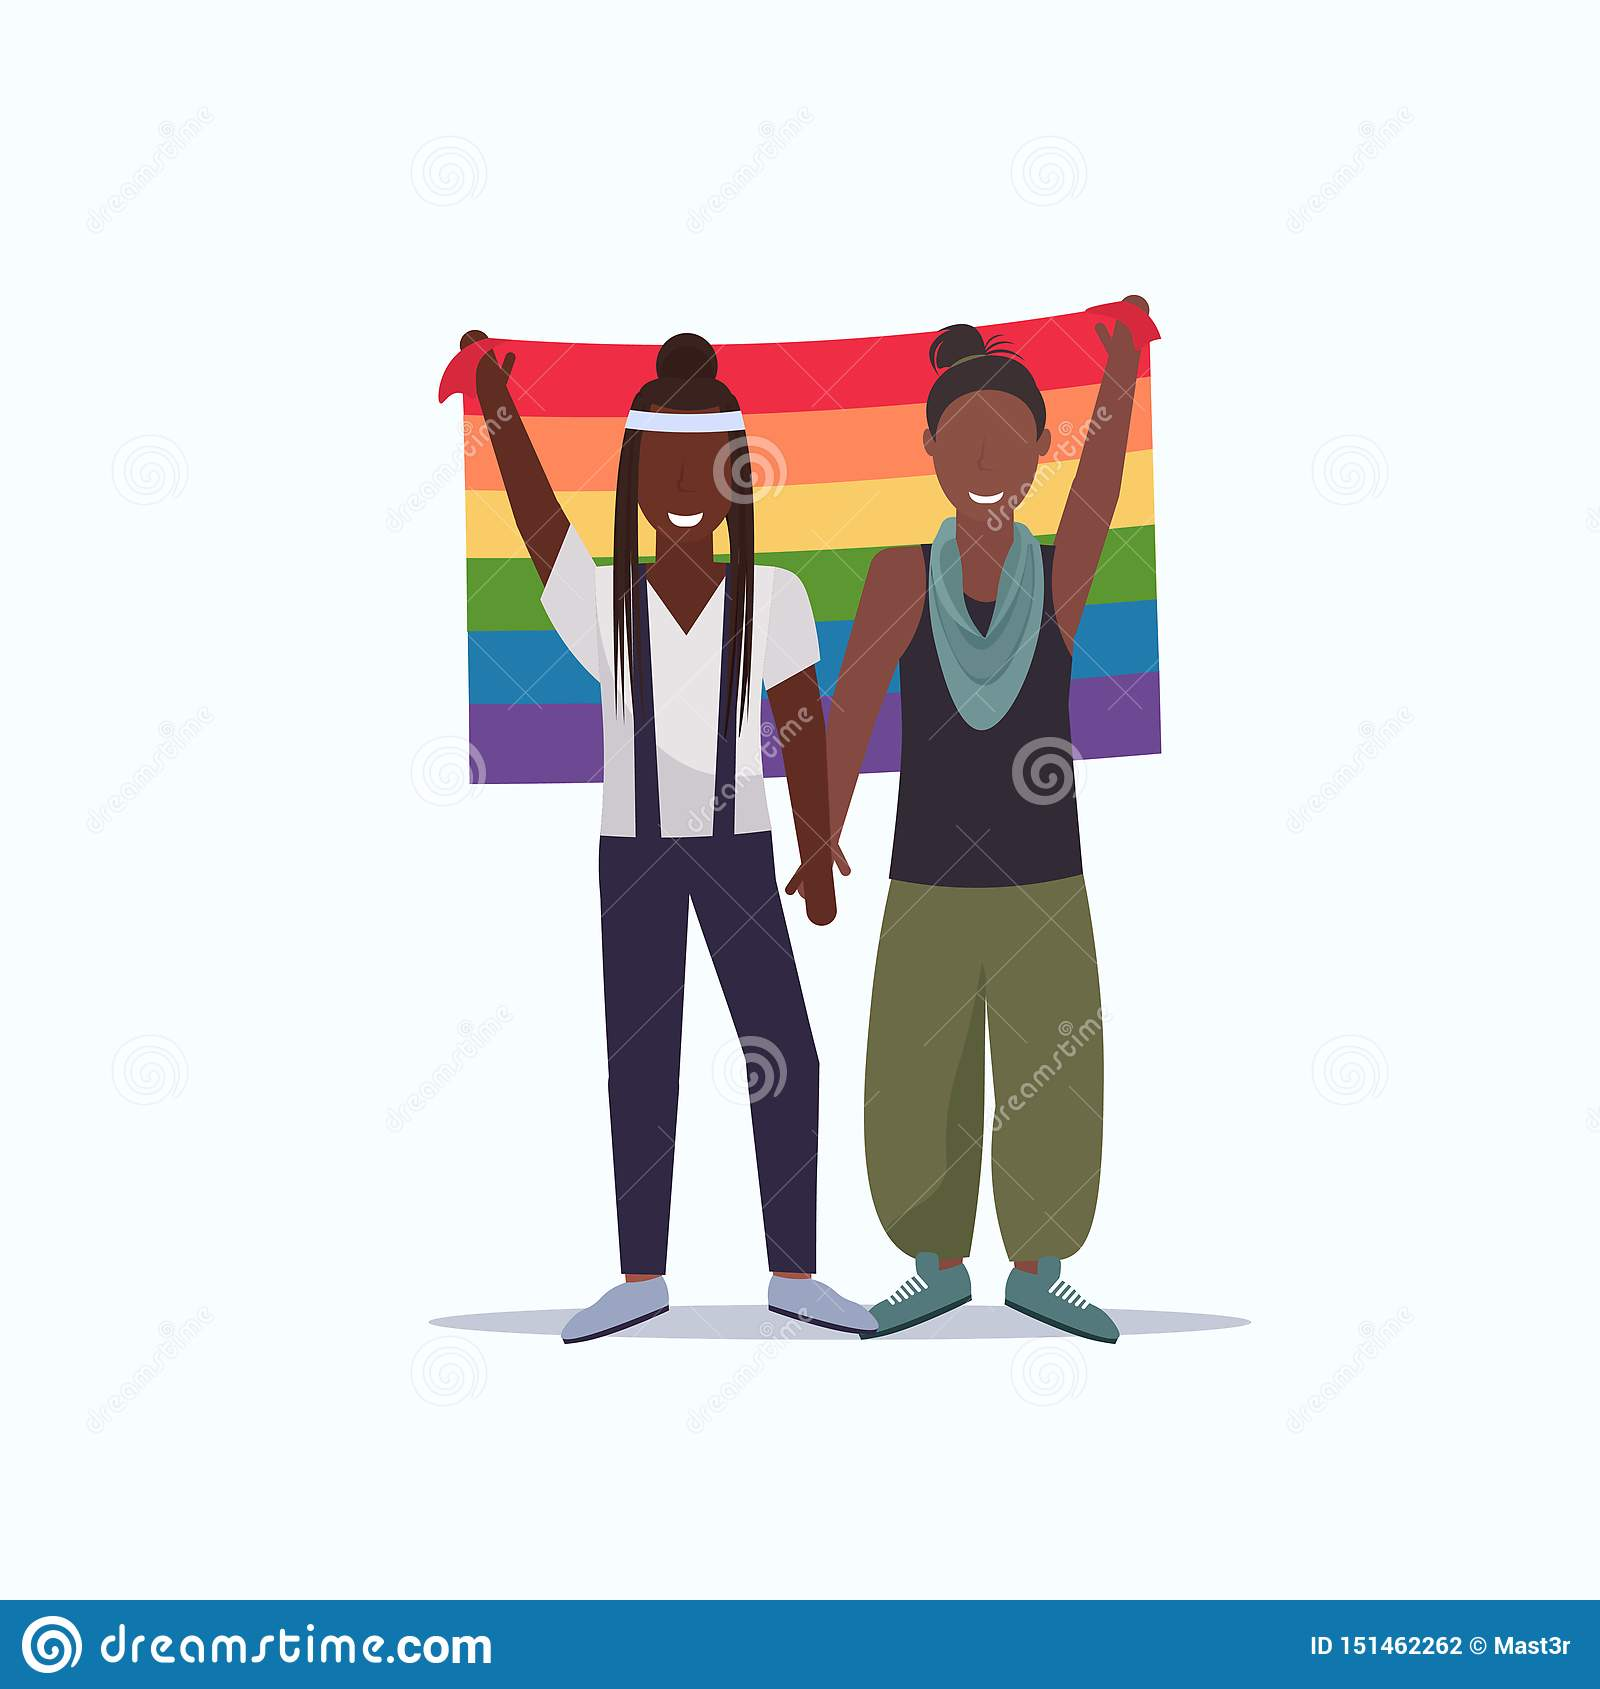 Women couple holding rainbow flag love parade lgbt pride festival concept two african american lesbians female cartoon